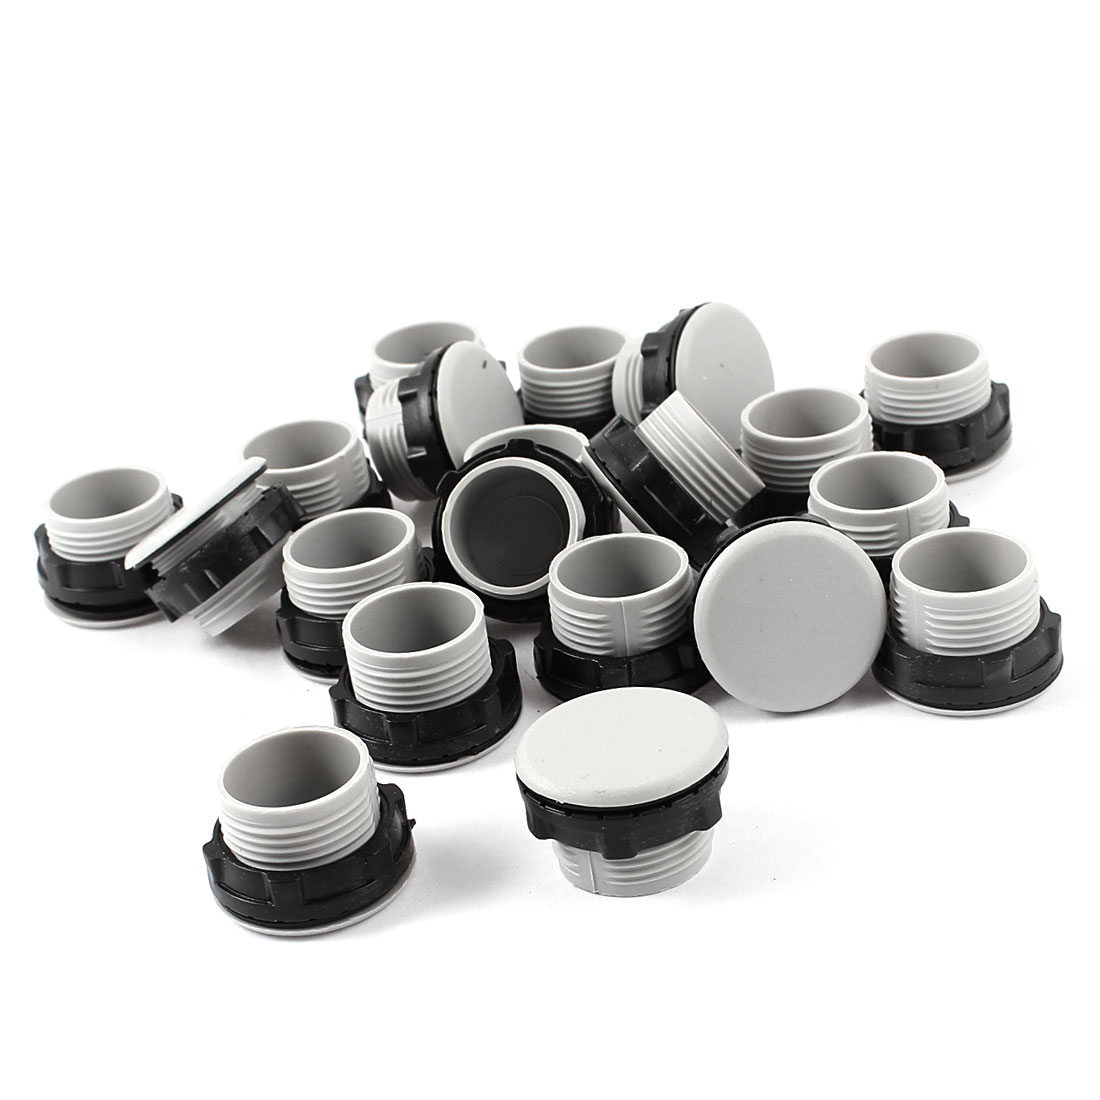 21mm Pilot Lamp Push In Type Button Switch Hole Cover Gray Black 20pcs